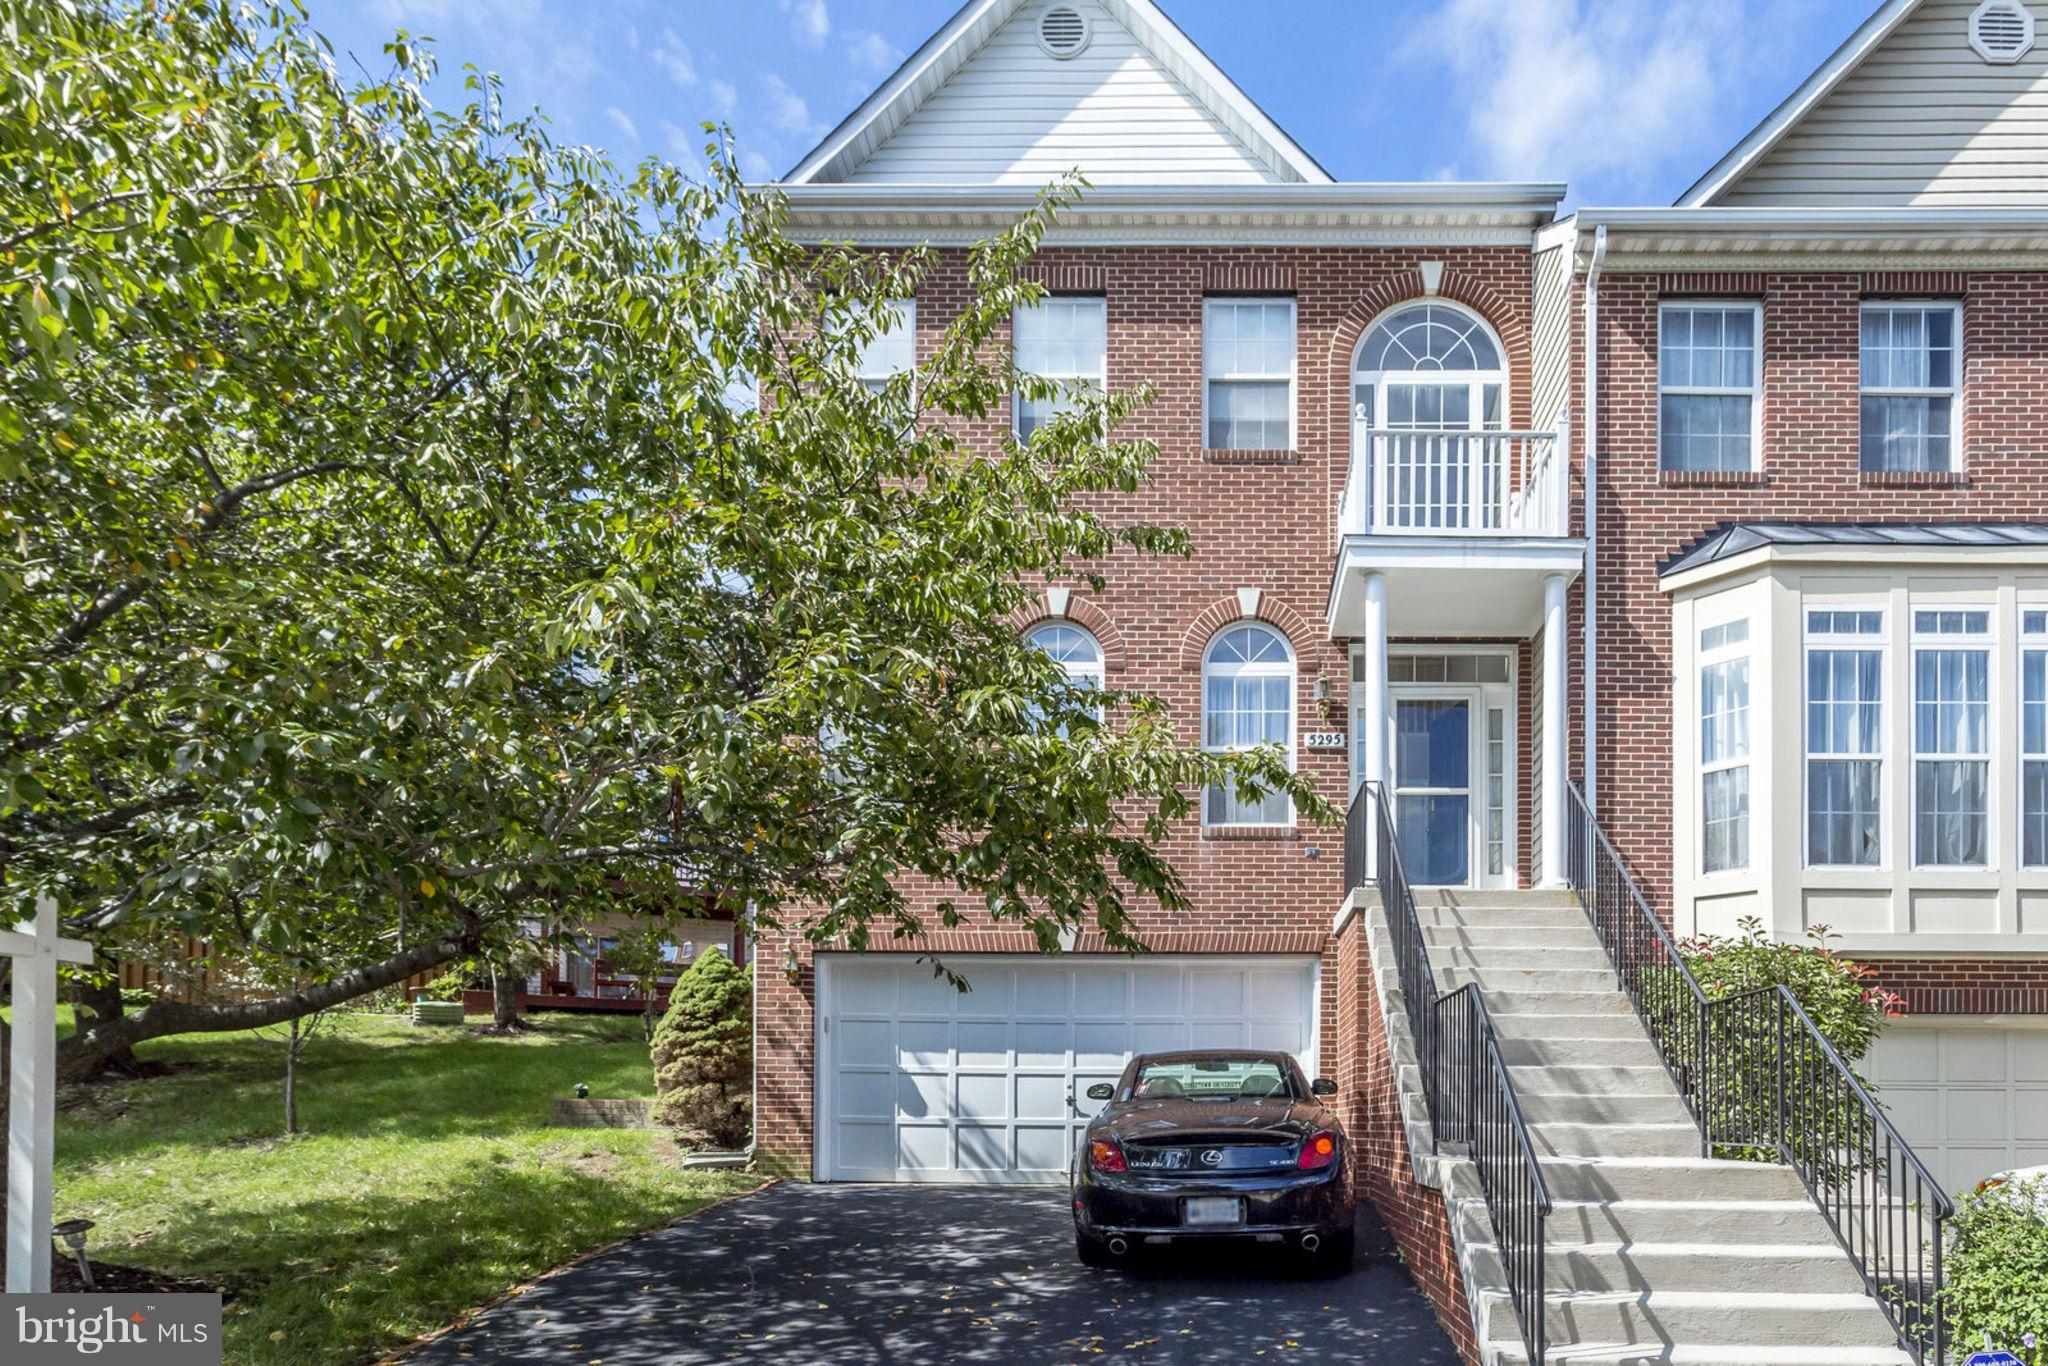 Luxurious 4-Level, 2-Sides Brick End-Unit! Features Hardwood Floors, Spacious Eat-In Kitchen w/ 20 Ft. Ceilings & Granite counters, Extra Windows, 42-Inch Cabinets, Recessed Lighting & W/O To Deck & Fenced Rear Yard. Master Suite w/ Double Vaulted Ceiling, Step-Down Sitting Area/Den & Spa-like Master Bath w/ Soaking Tub & Sep Shower. Walk out Lower Level Rec Rm w/ fireplace OR use as 3rd bedroom